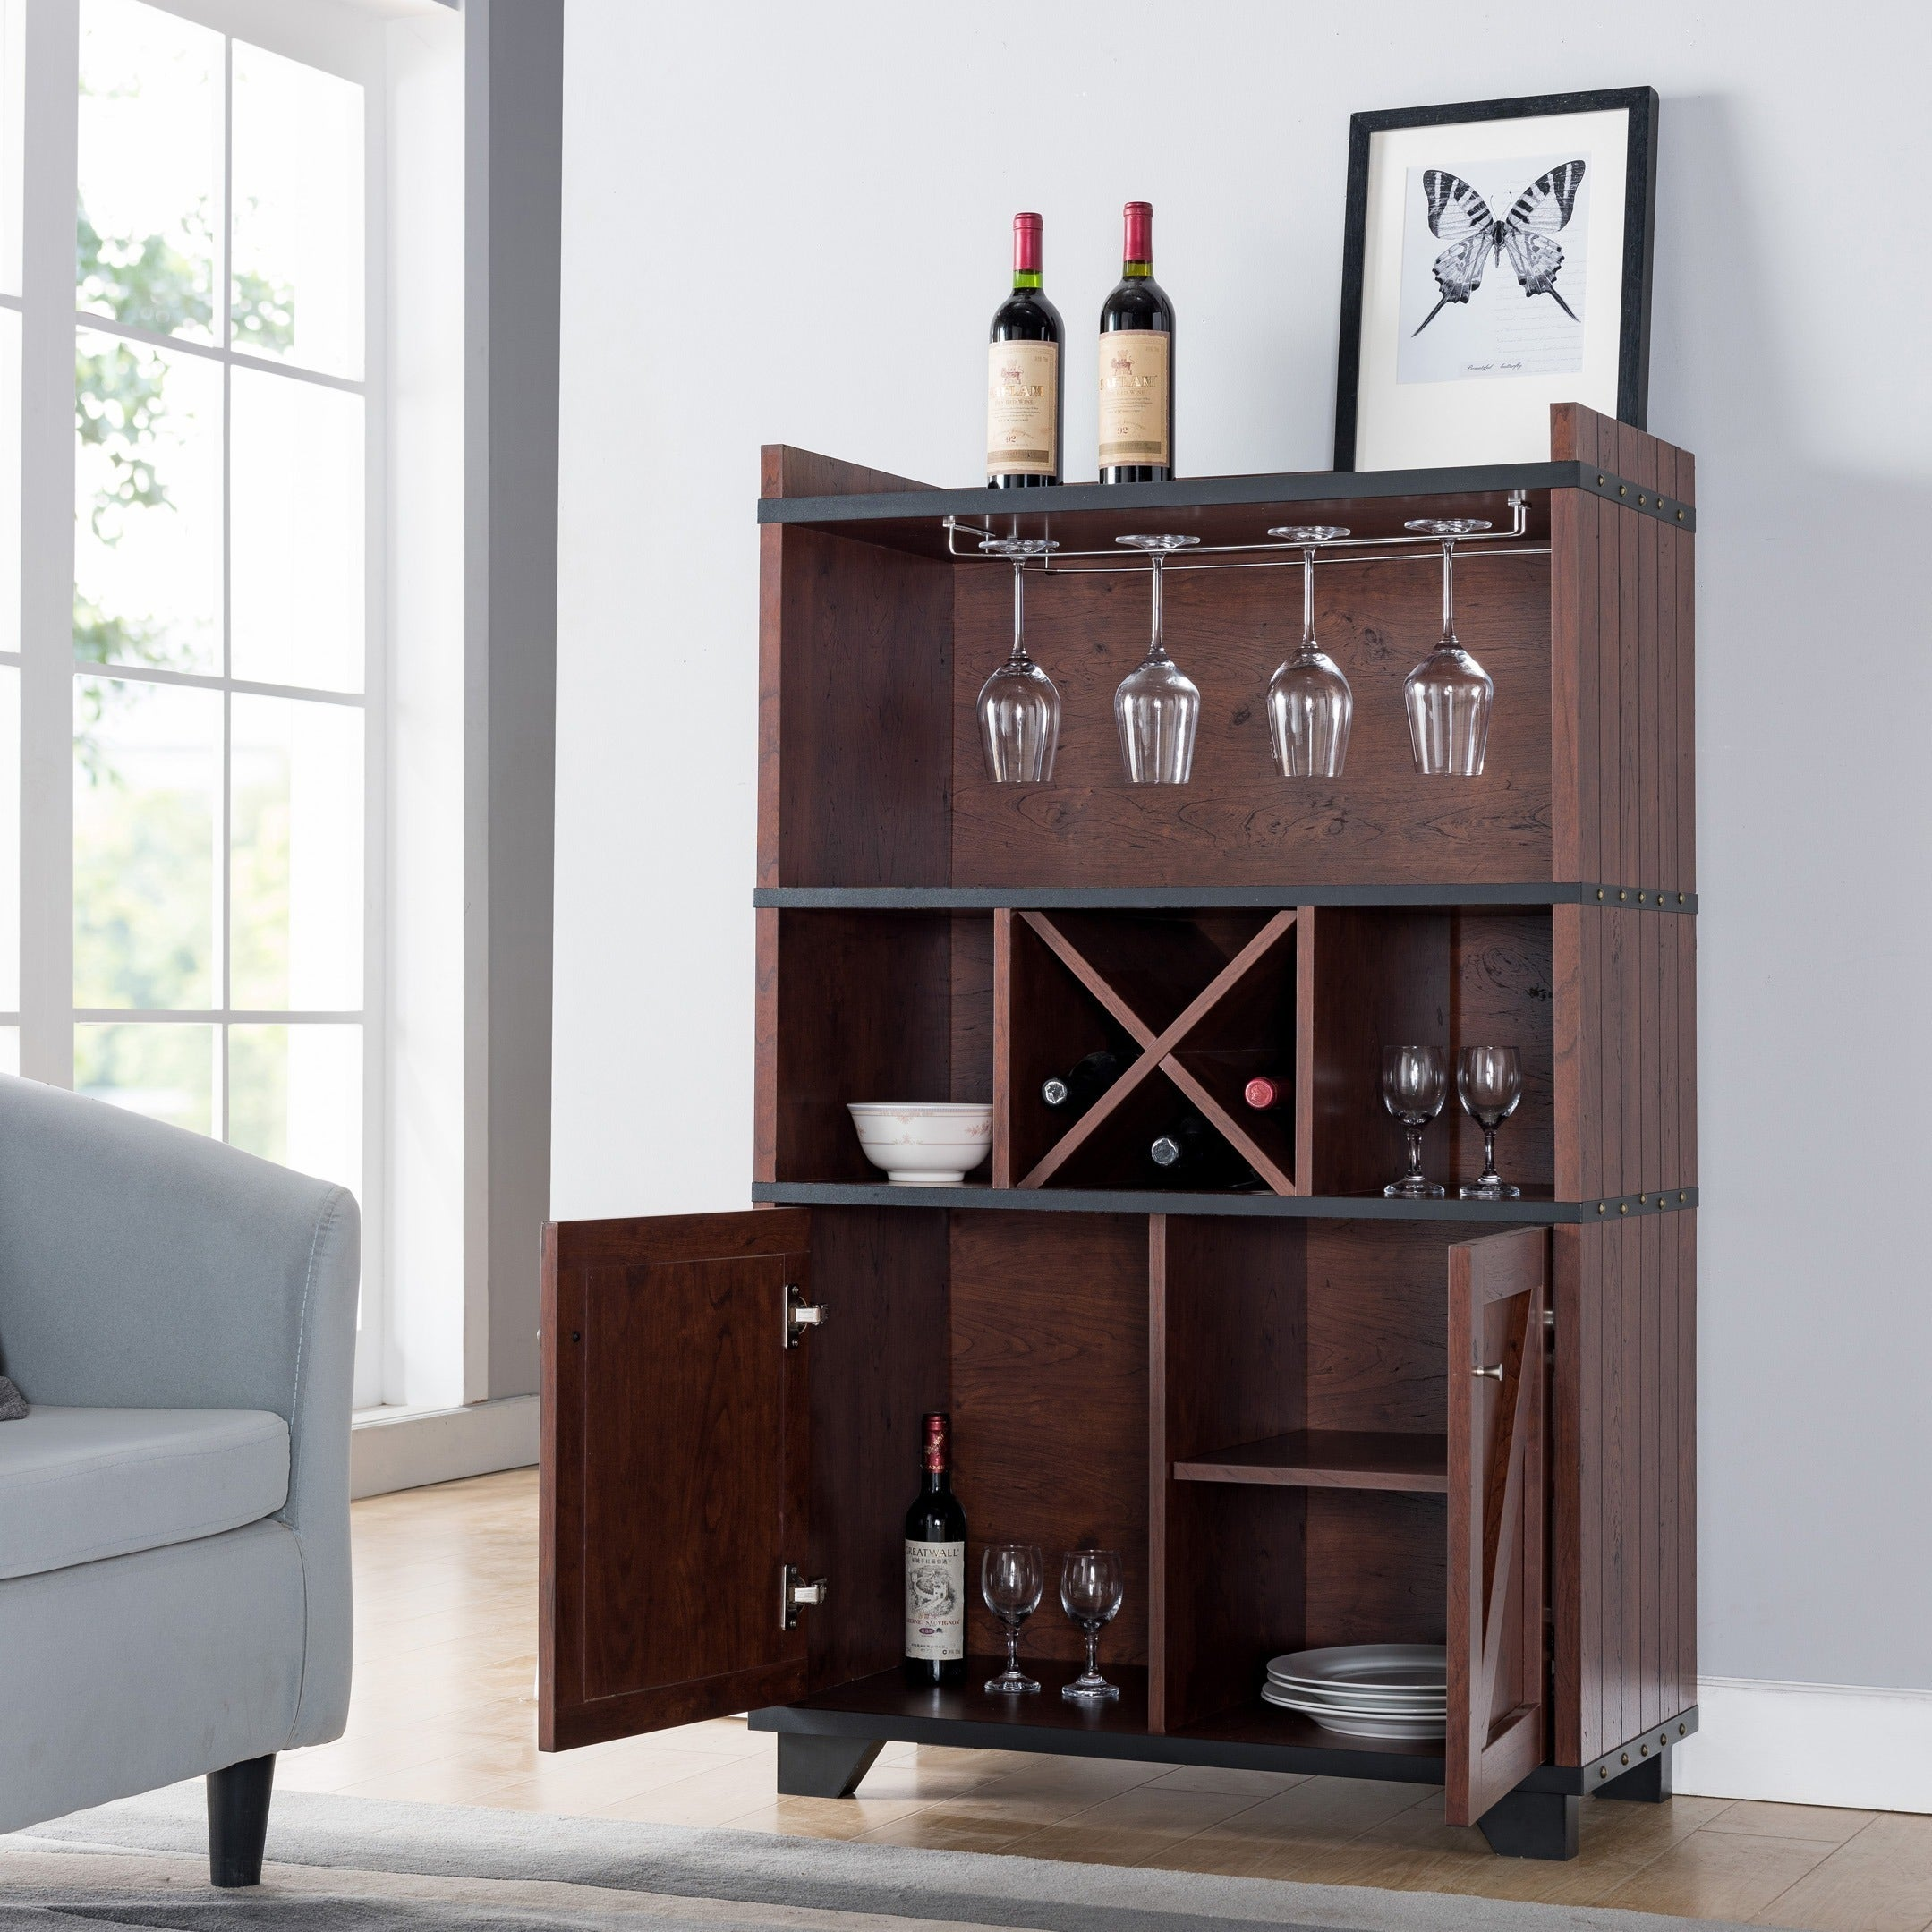 Shop Furniture Of America Wesleyan Rustic Farmhouse Wine Cabinet